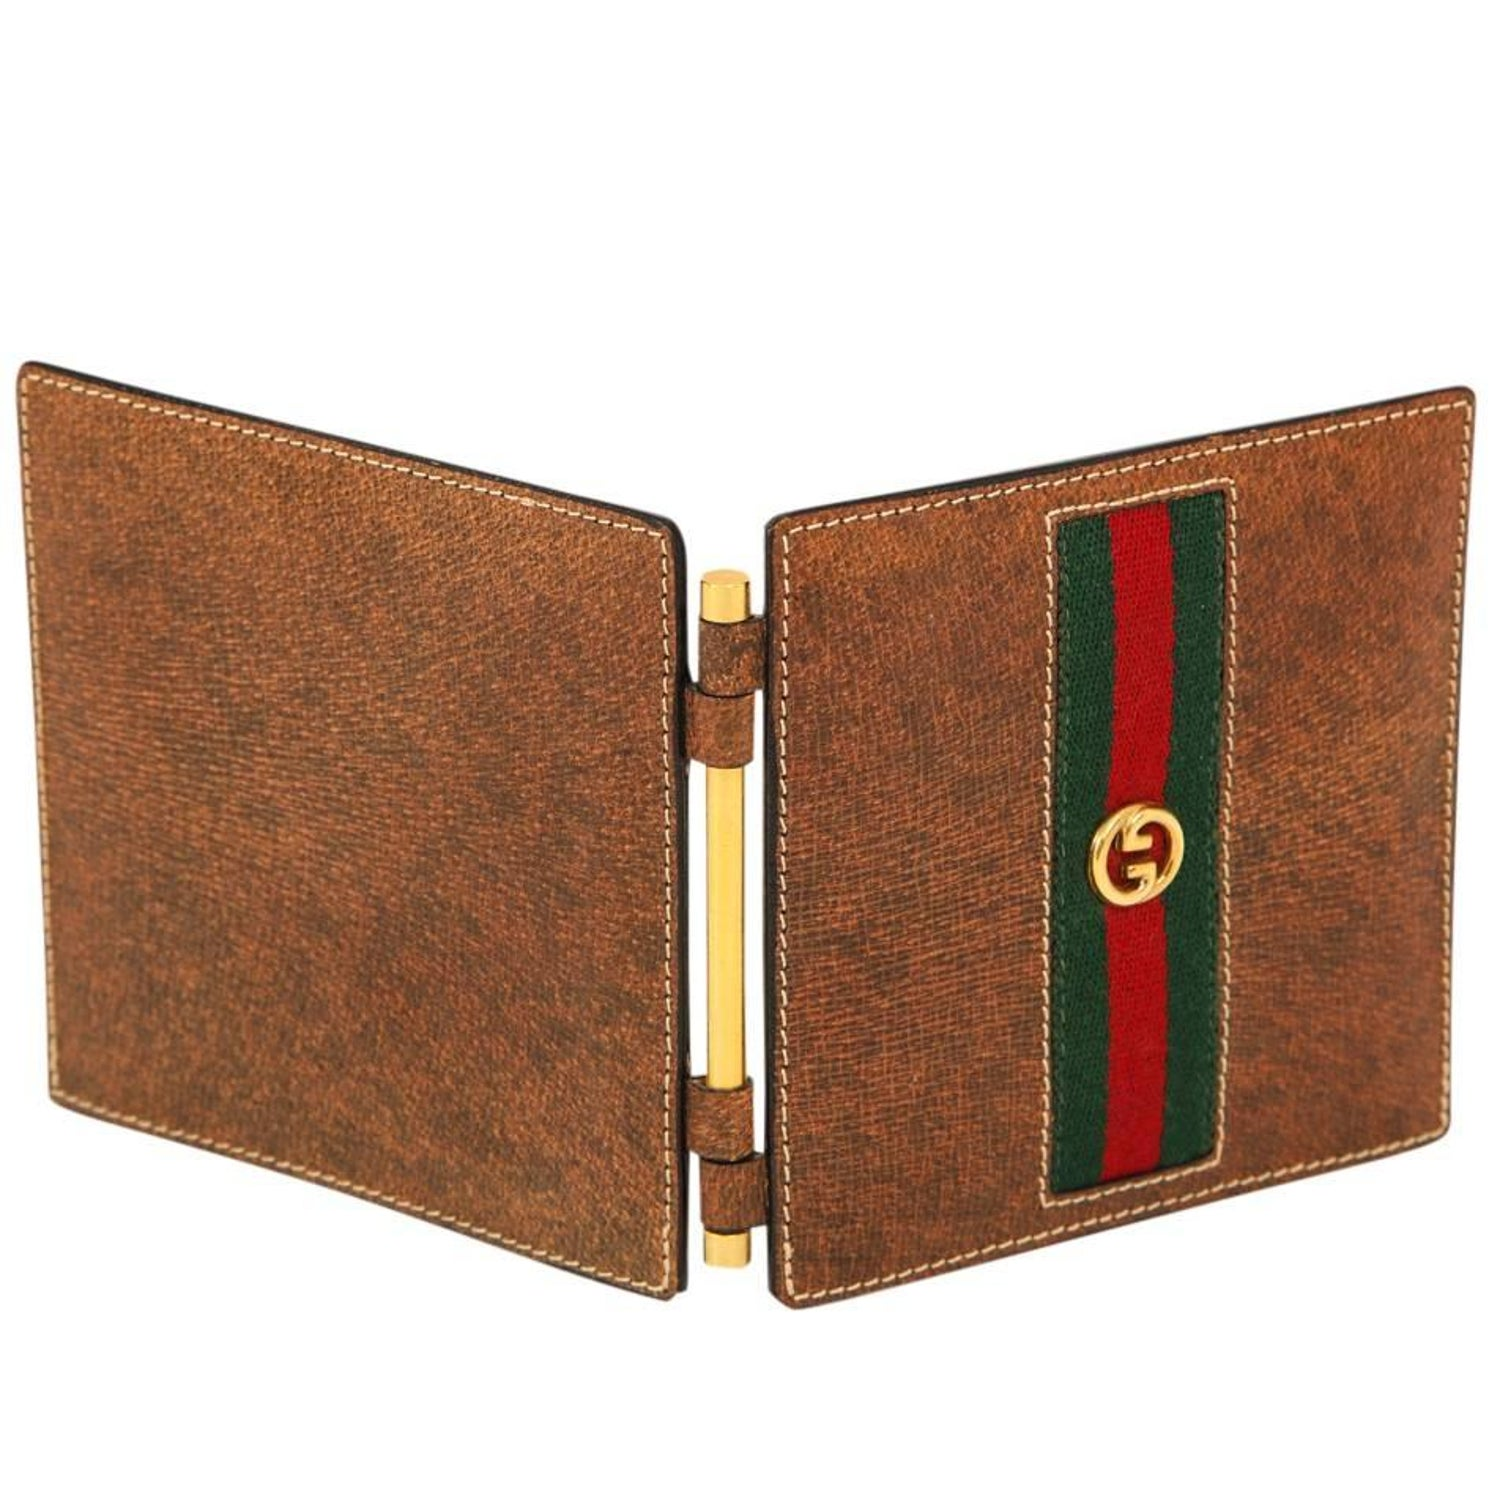 Gucci Picture Frames - 14 For Sale at 1stdibs